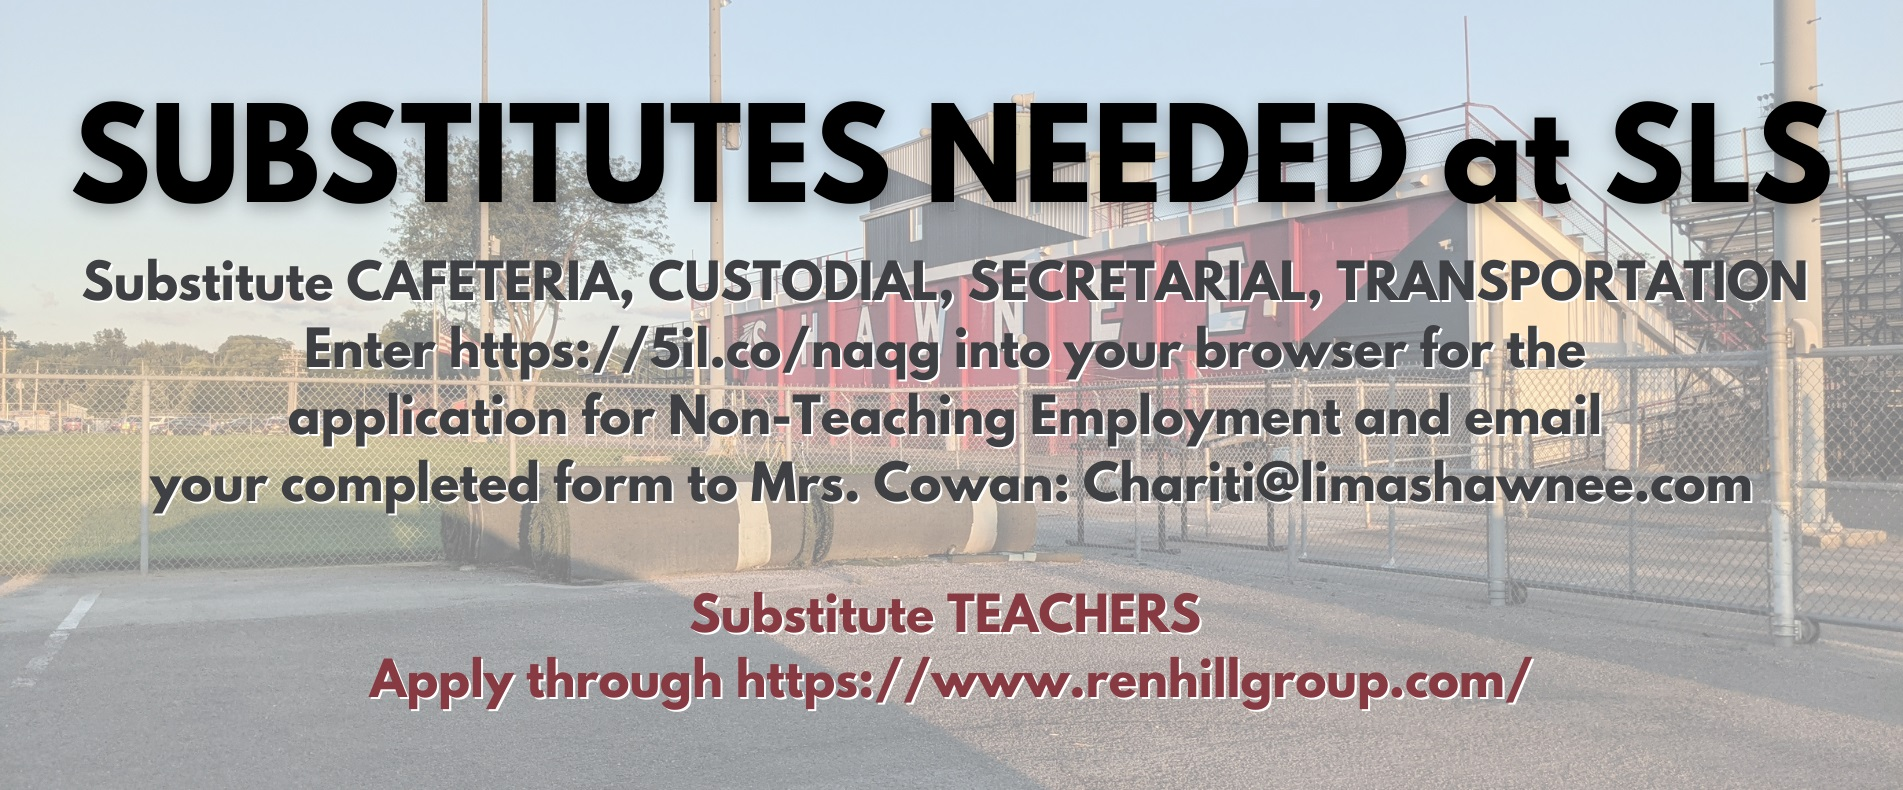 Substitutes needed at SLS